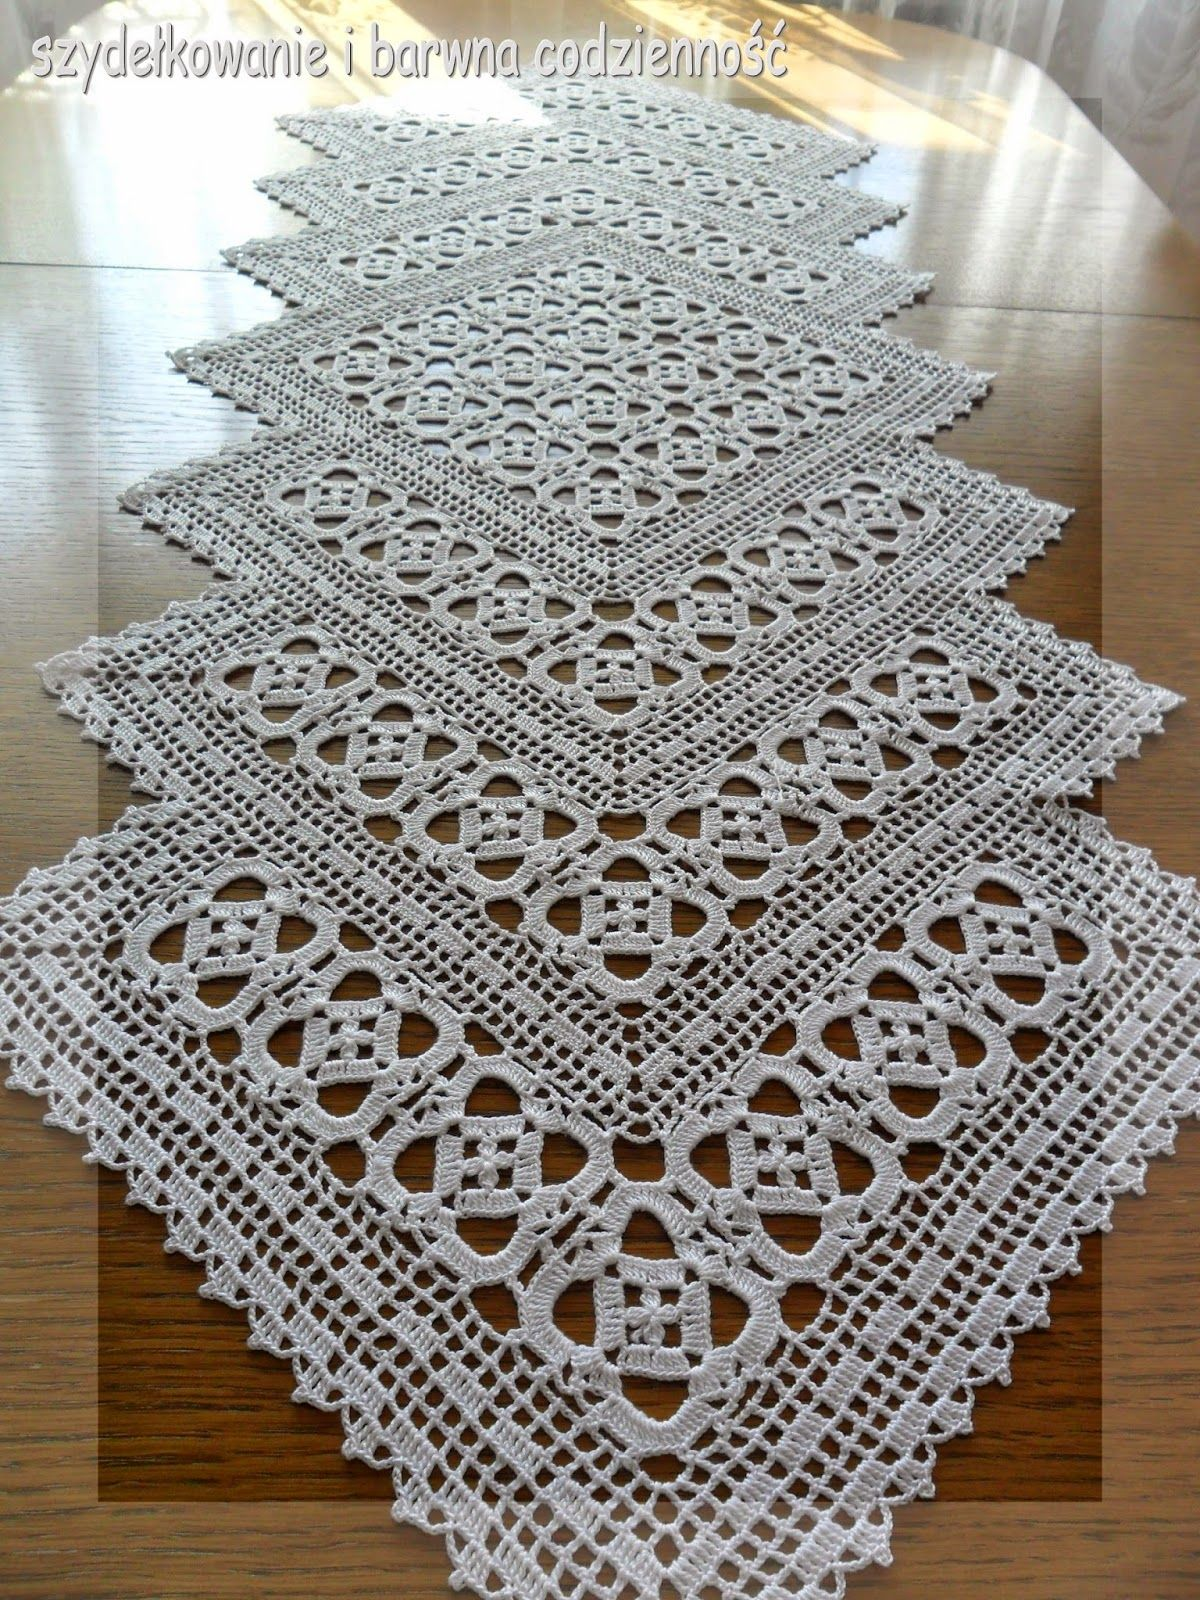 Szydekowanie i barwna codzienno proyectos que debo filet crochet runner pic for inspiration ccuart Images